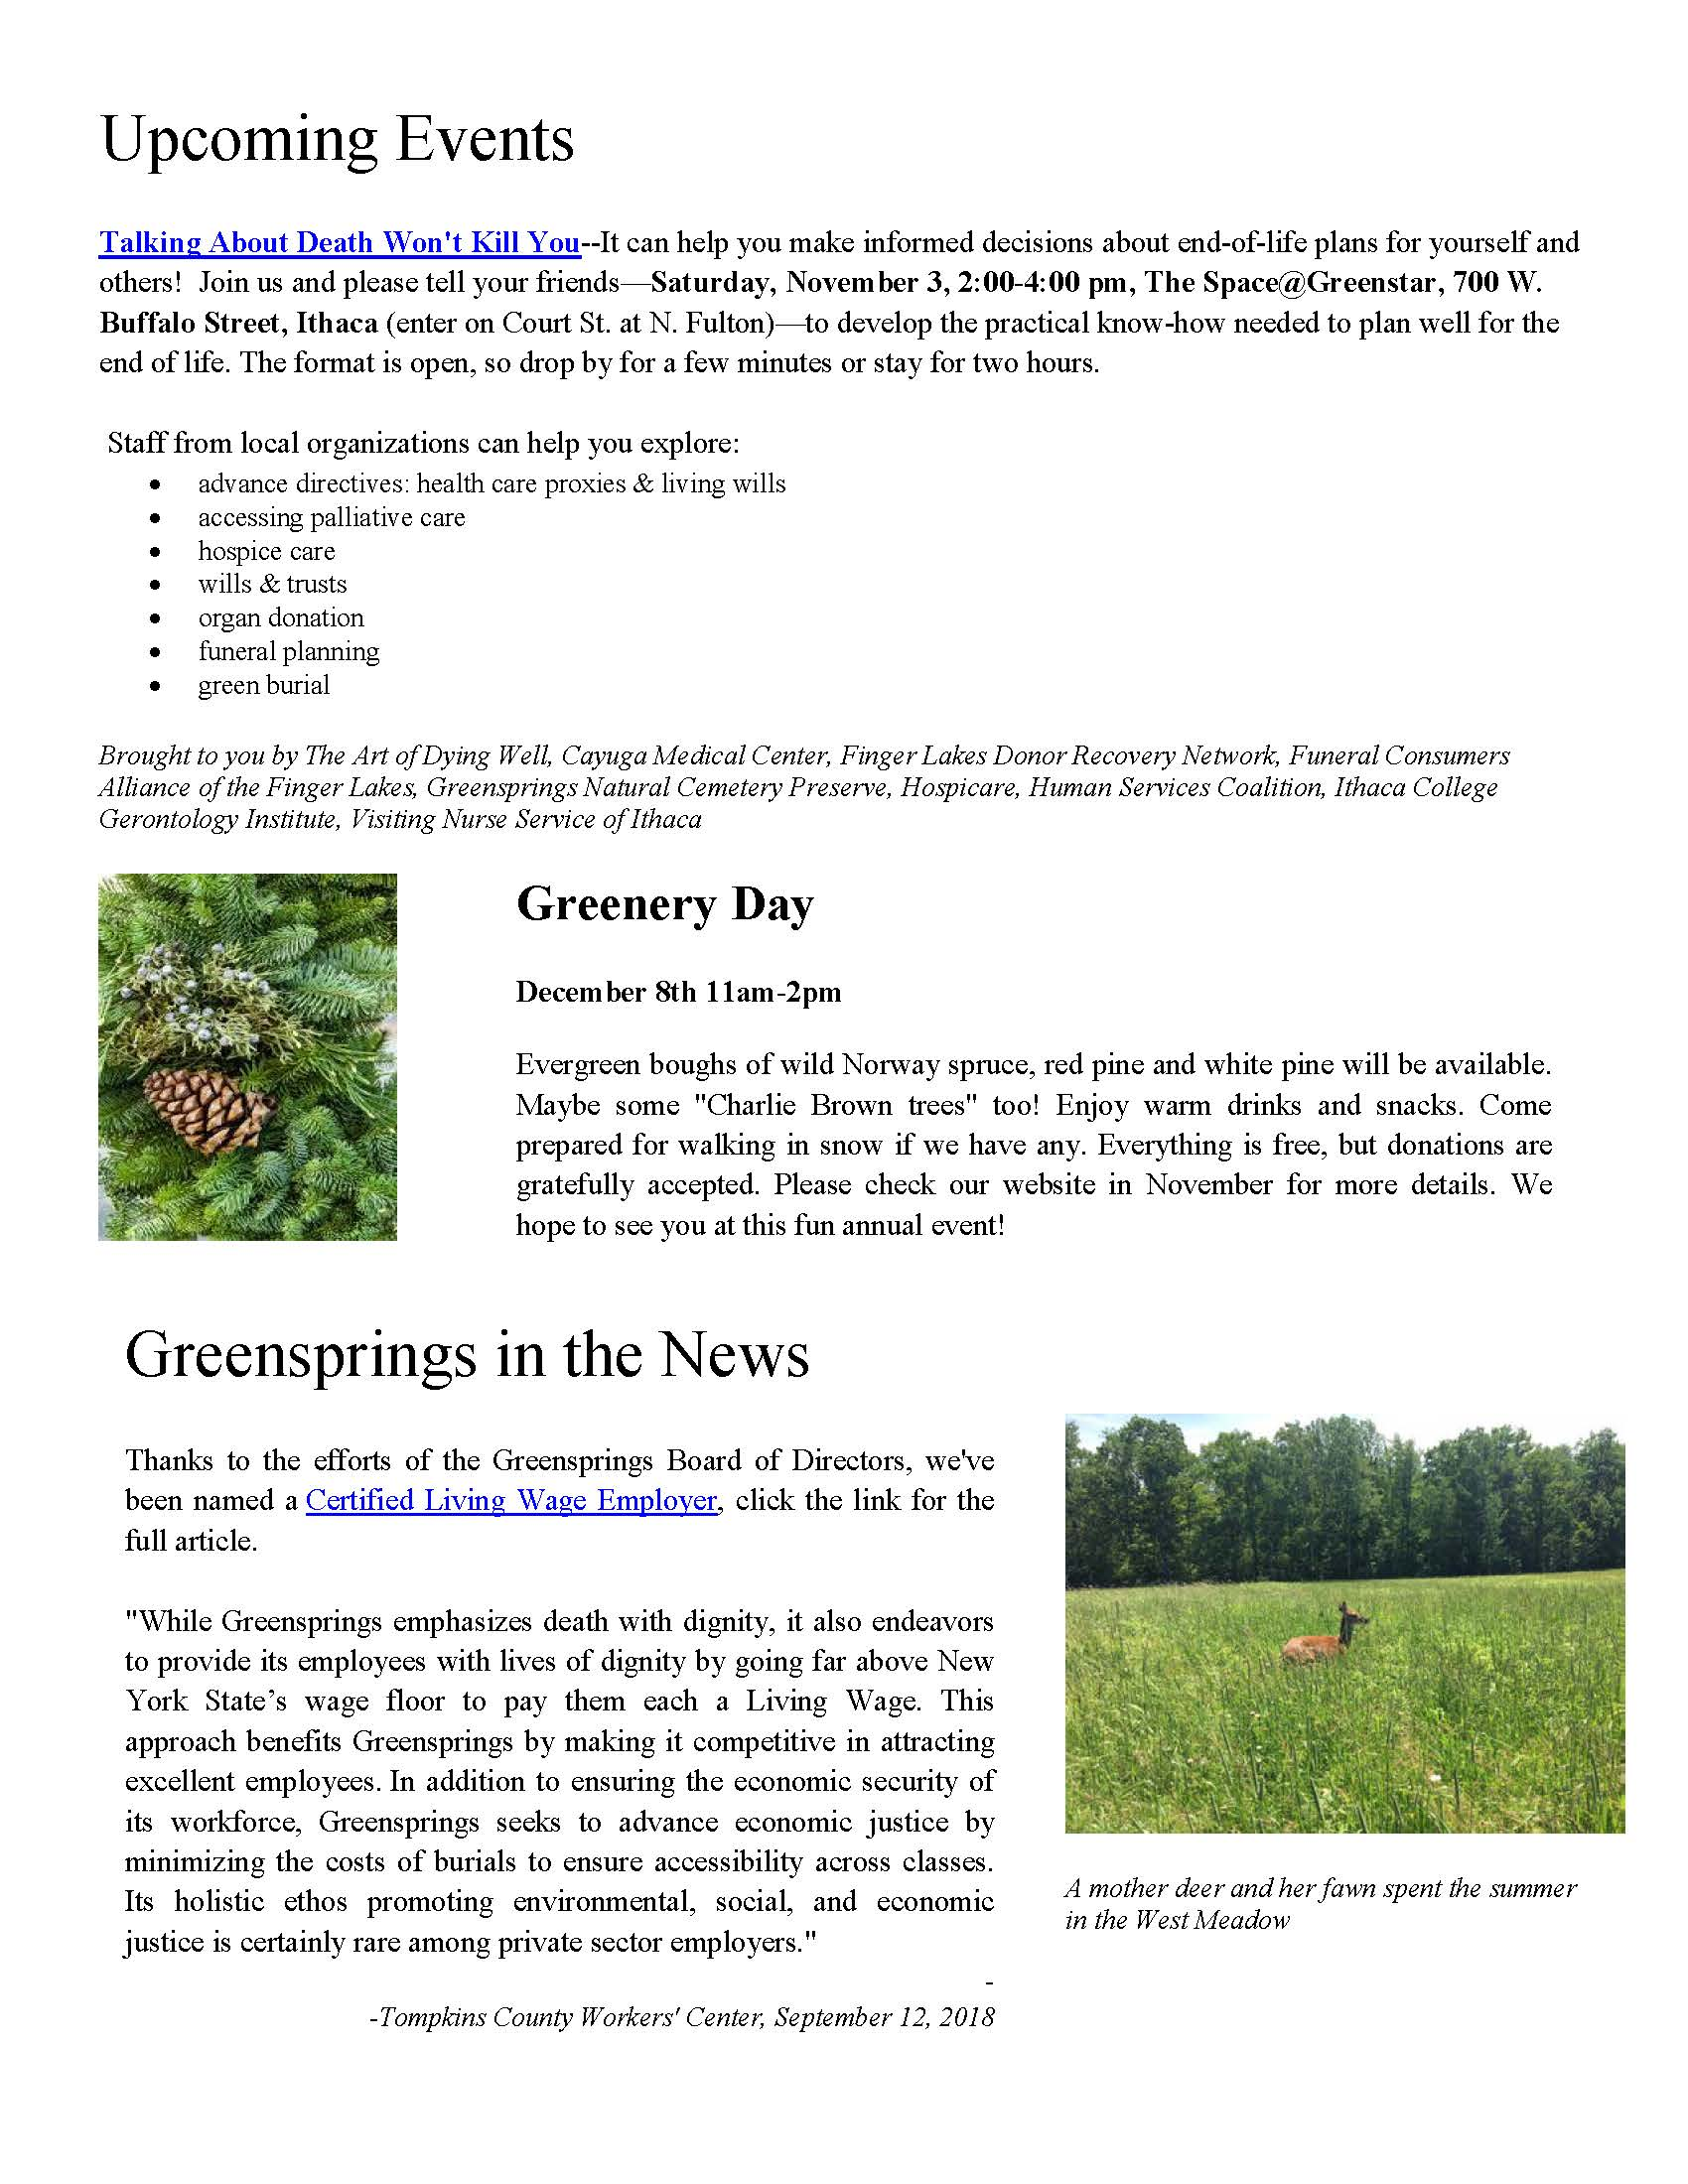 Greensprings Fall Newsletter 2018_Page_2.jpg